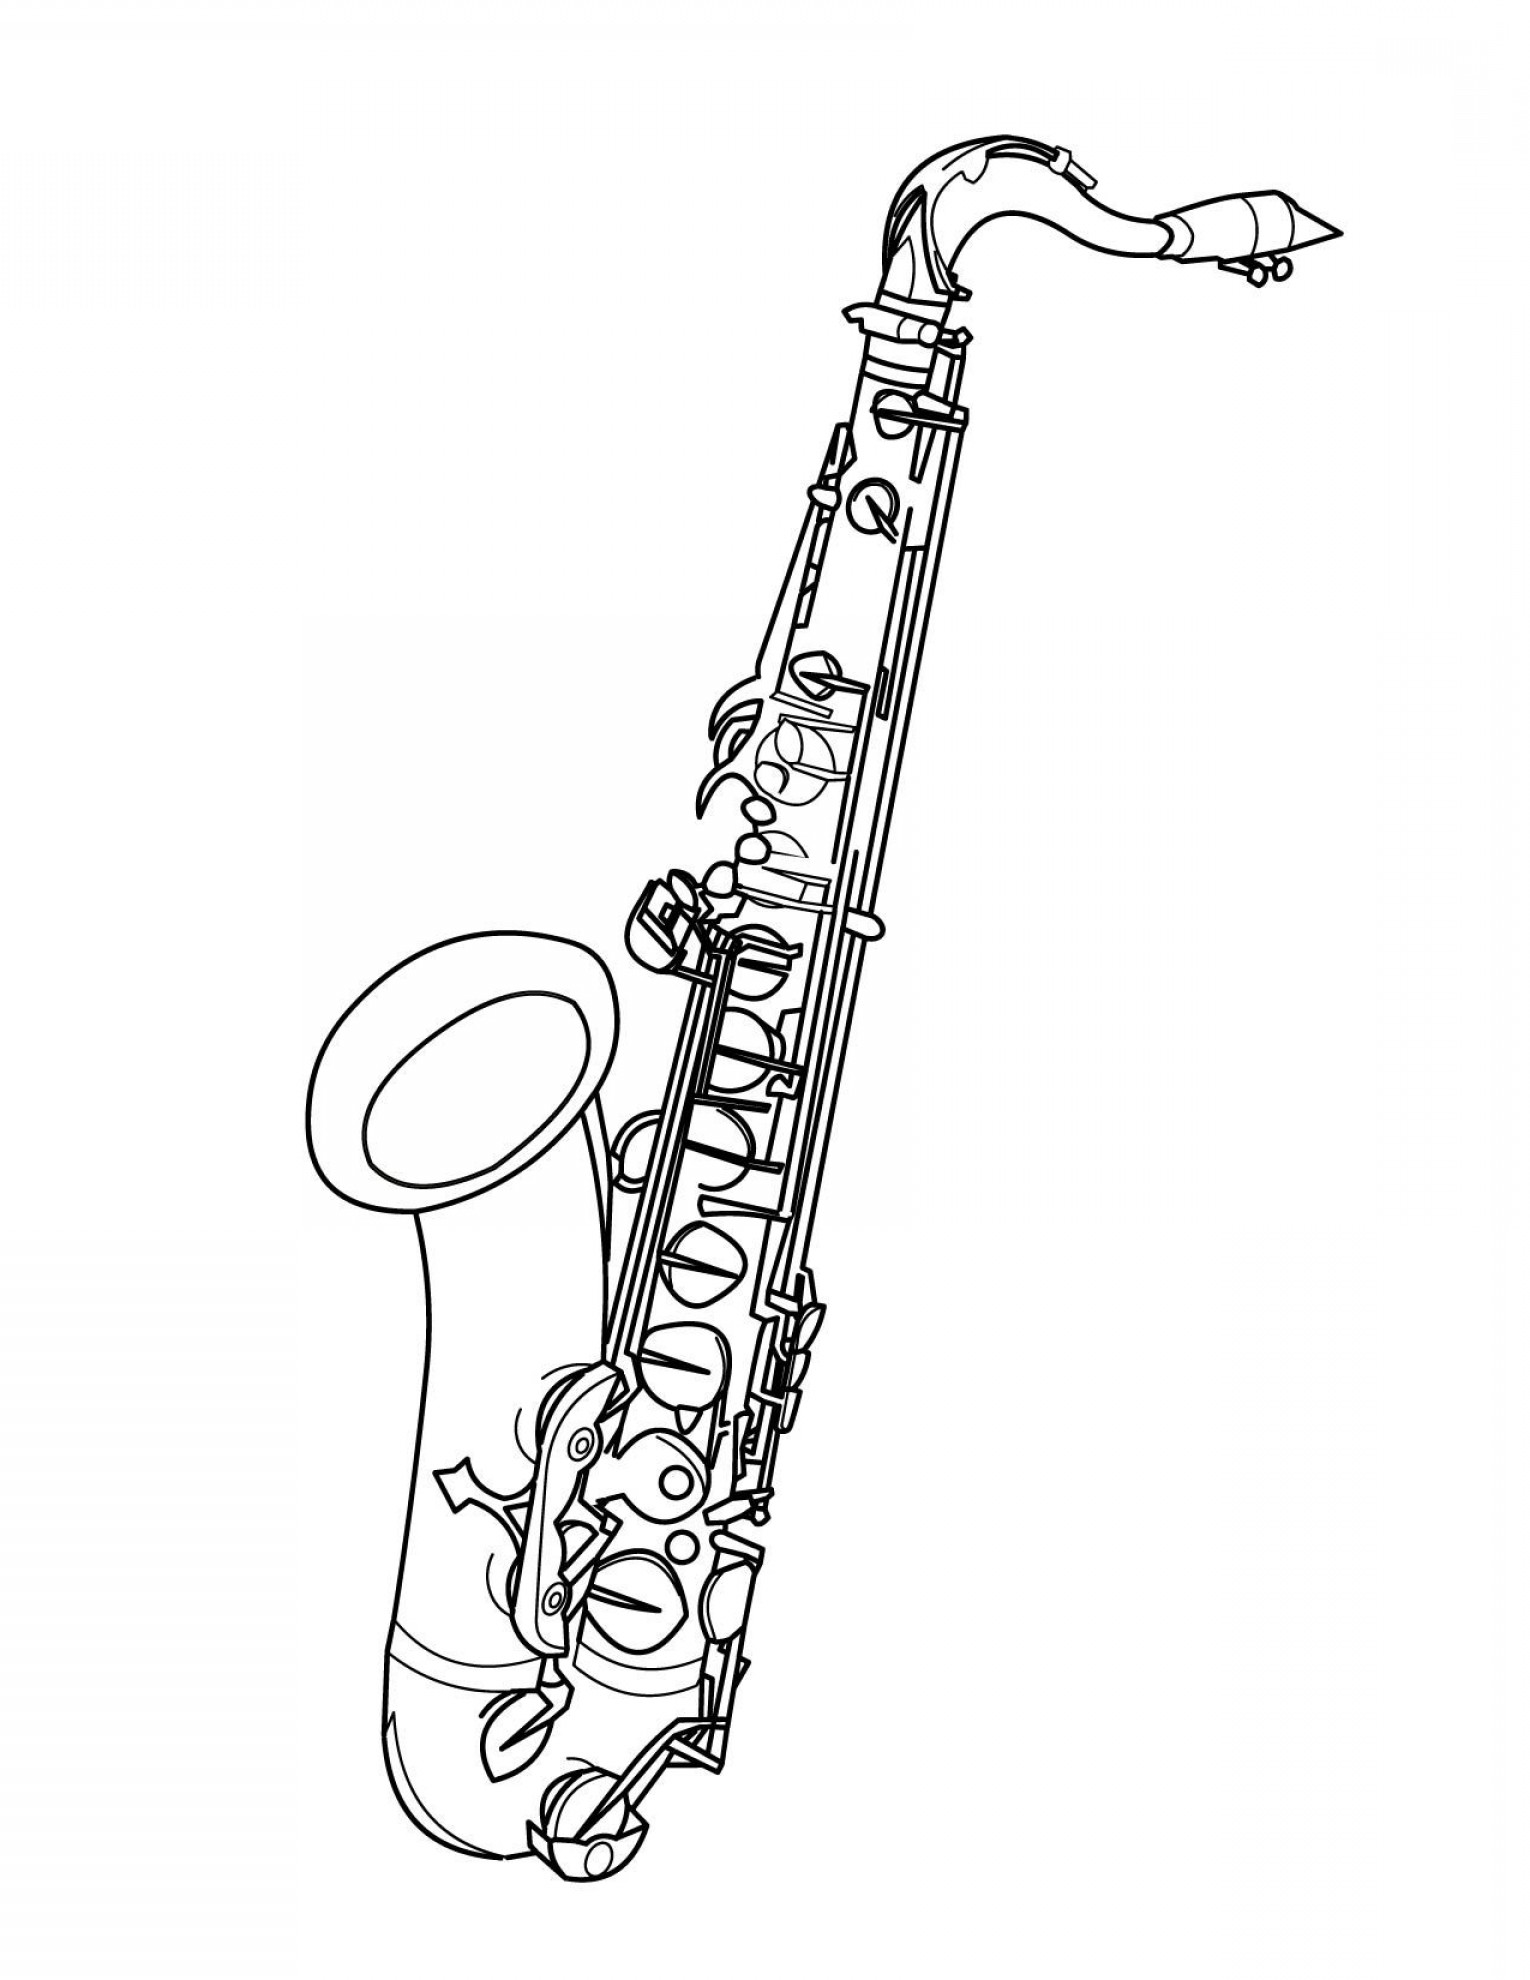 how to draw a saxophone easy 11119046 a sketch brass musical instrument saxophone tenor saxophone a draw to easy how